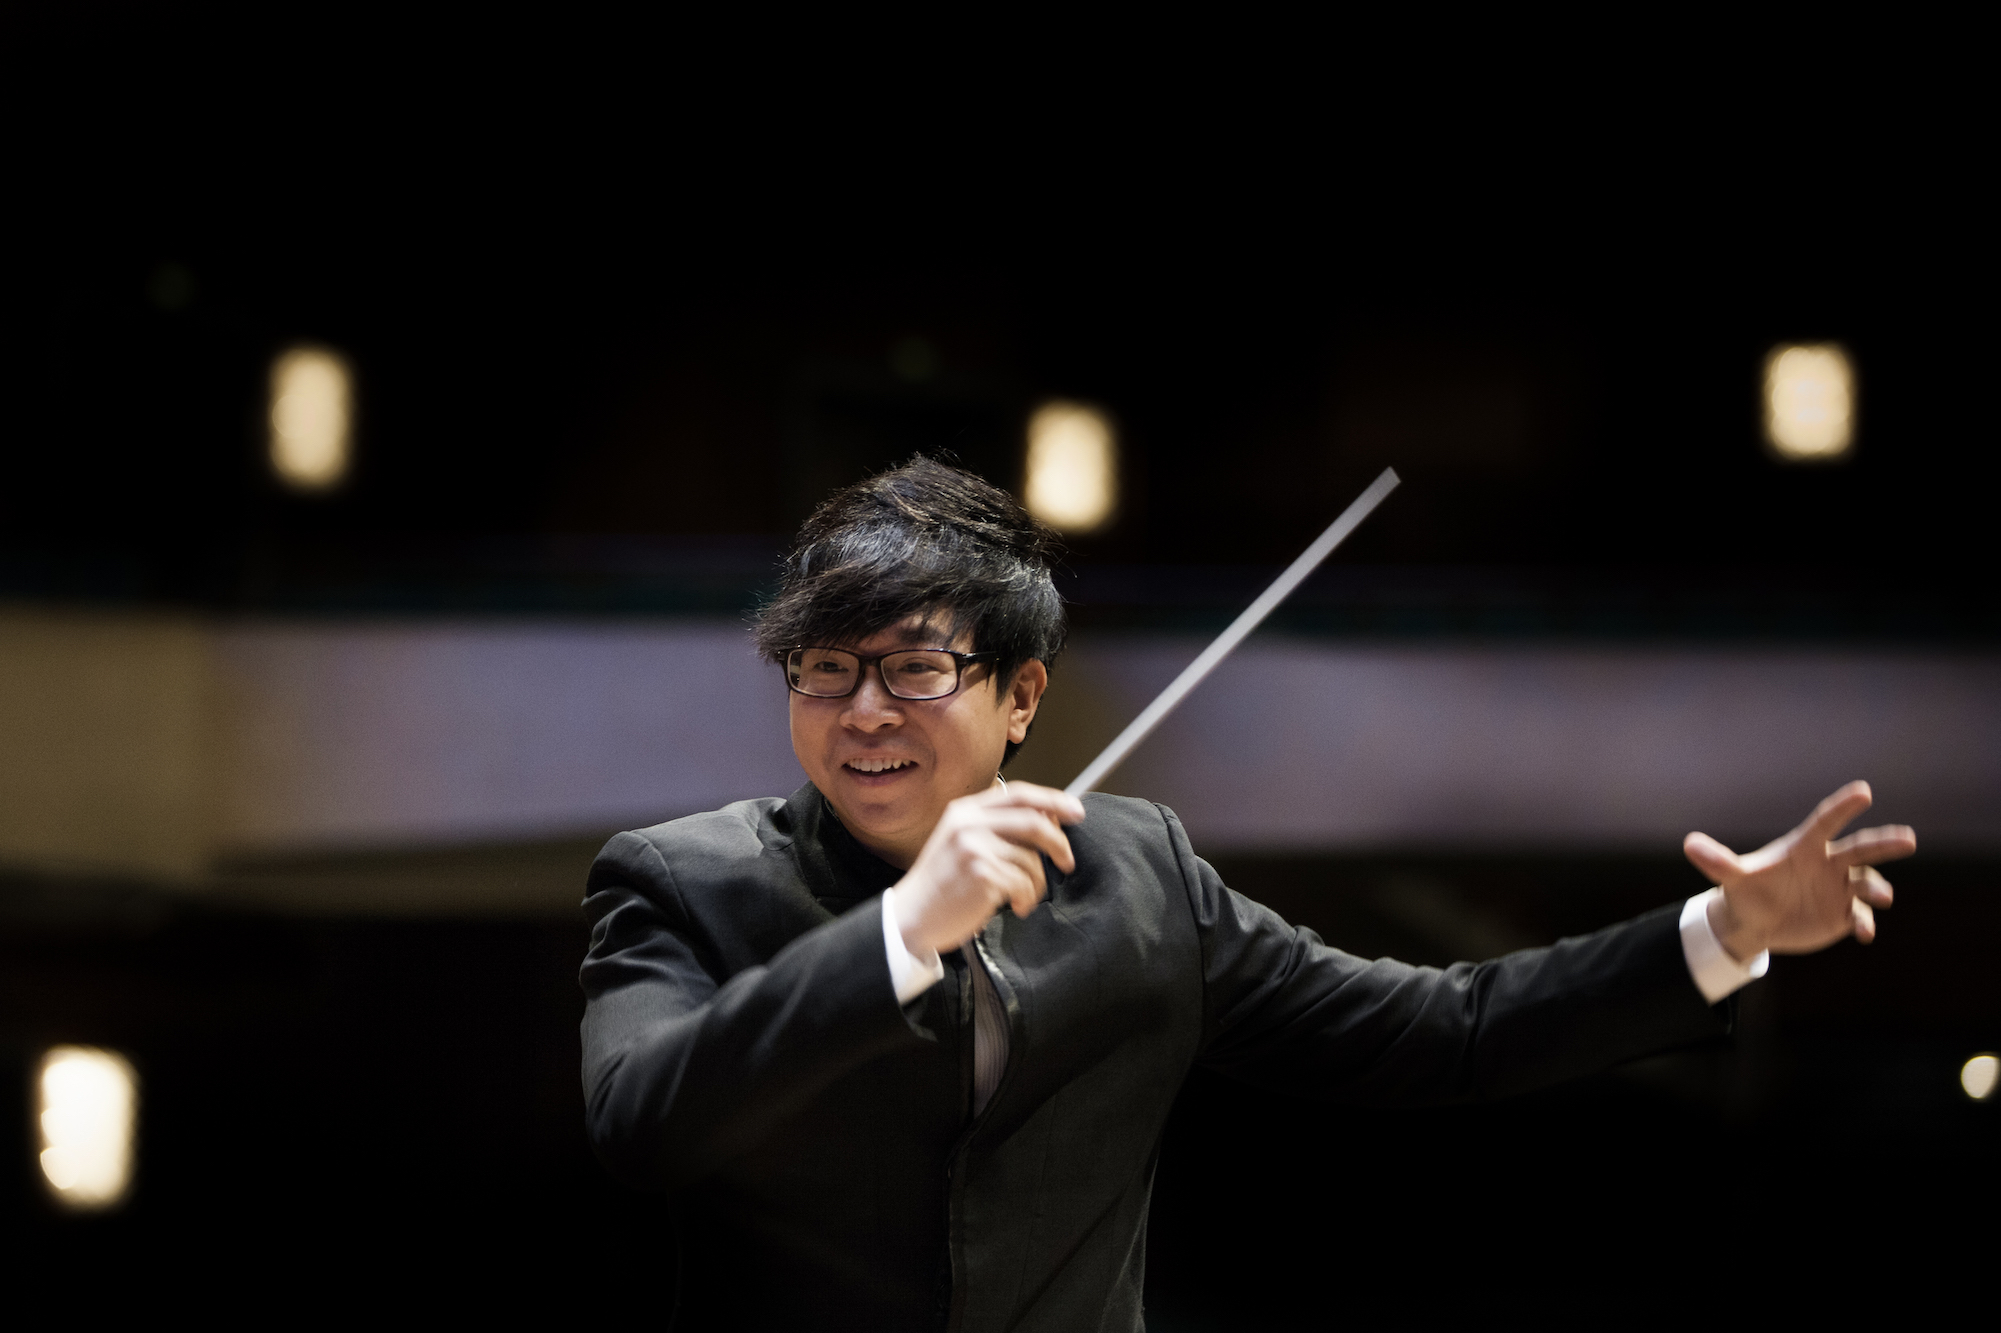 Interview: Kahchun Wong on life as a music conductor during a pandemic